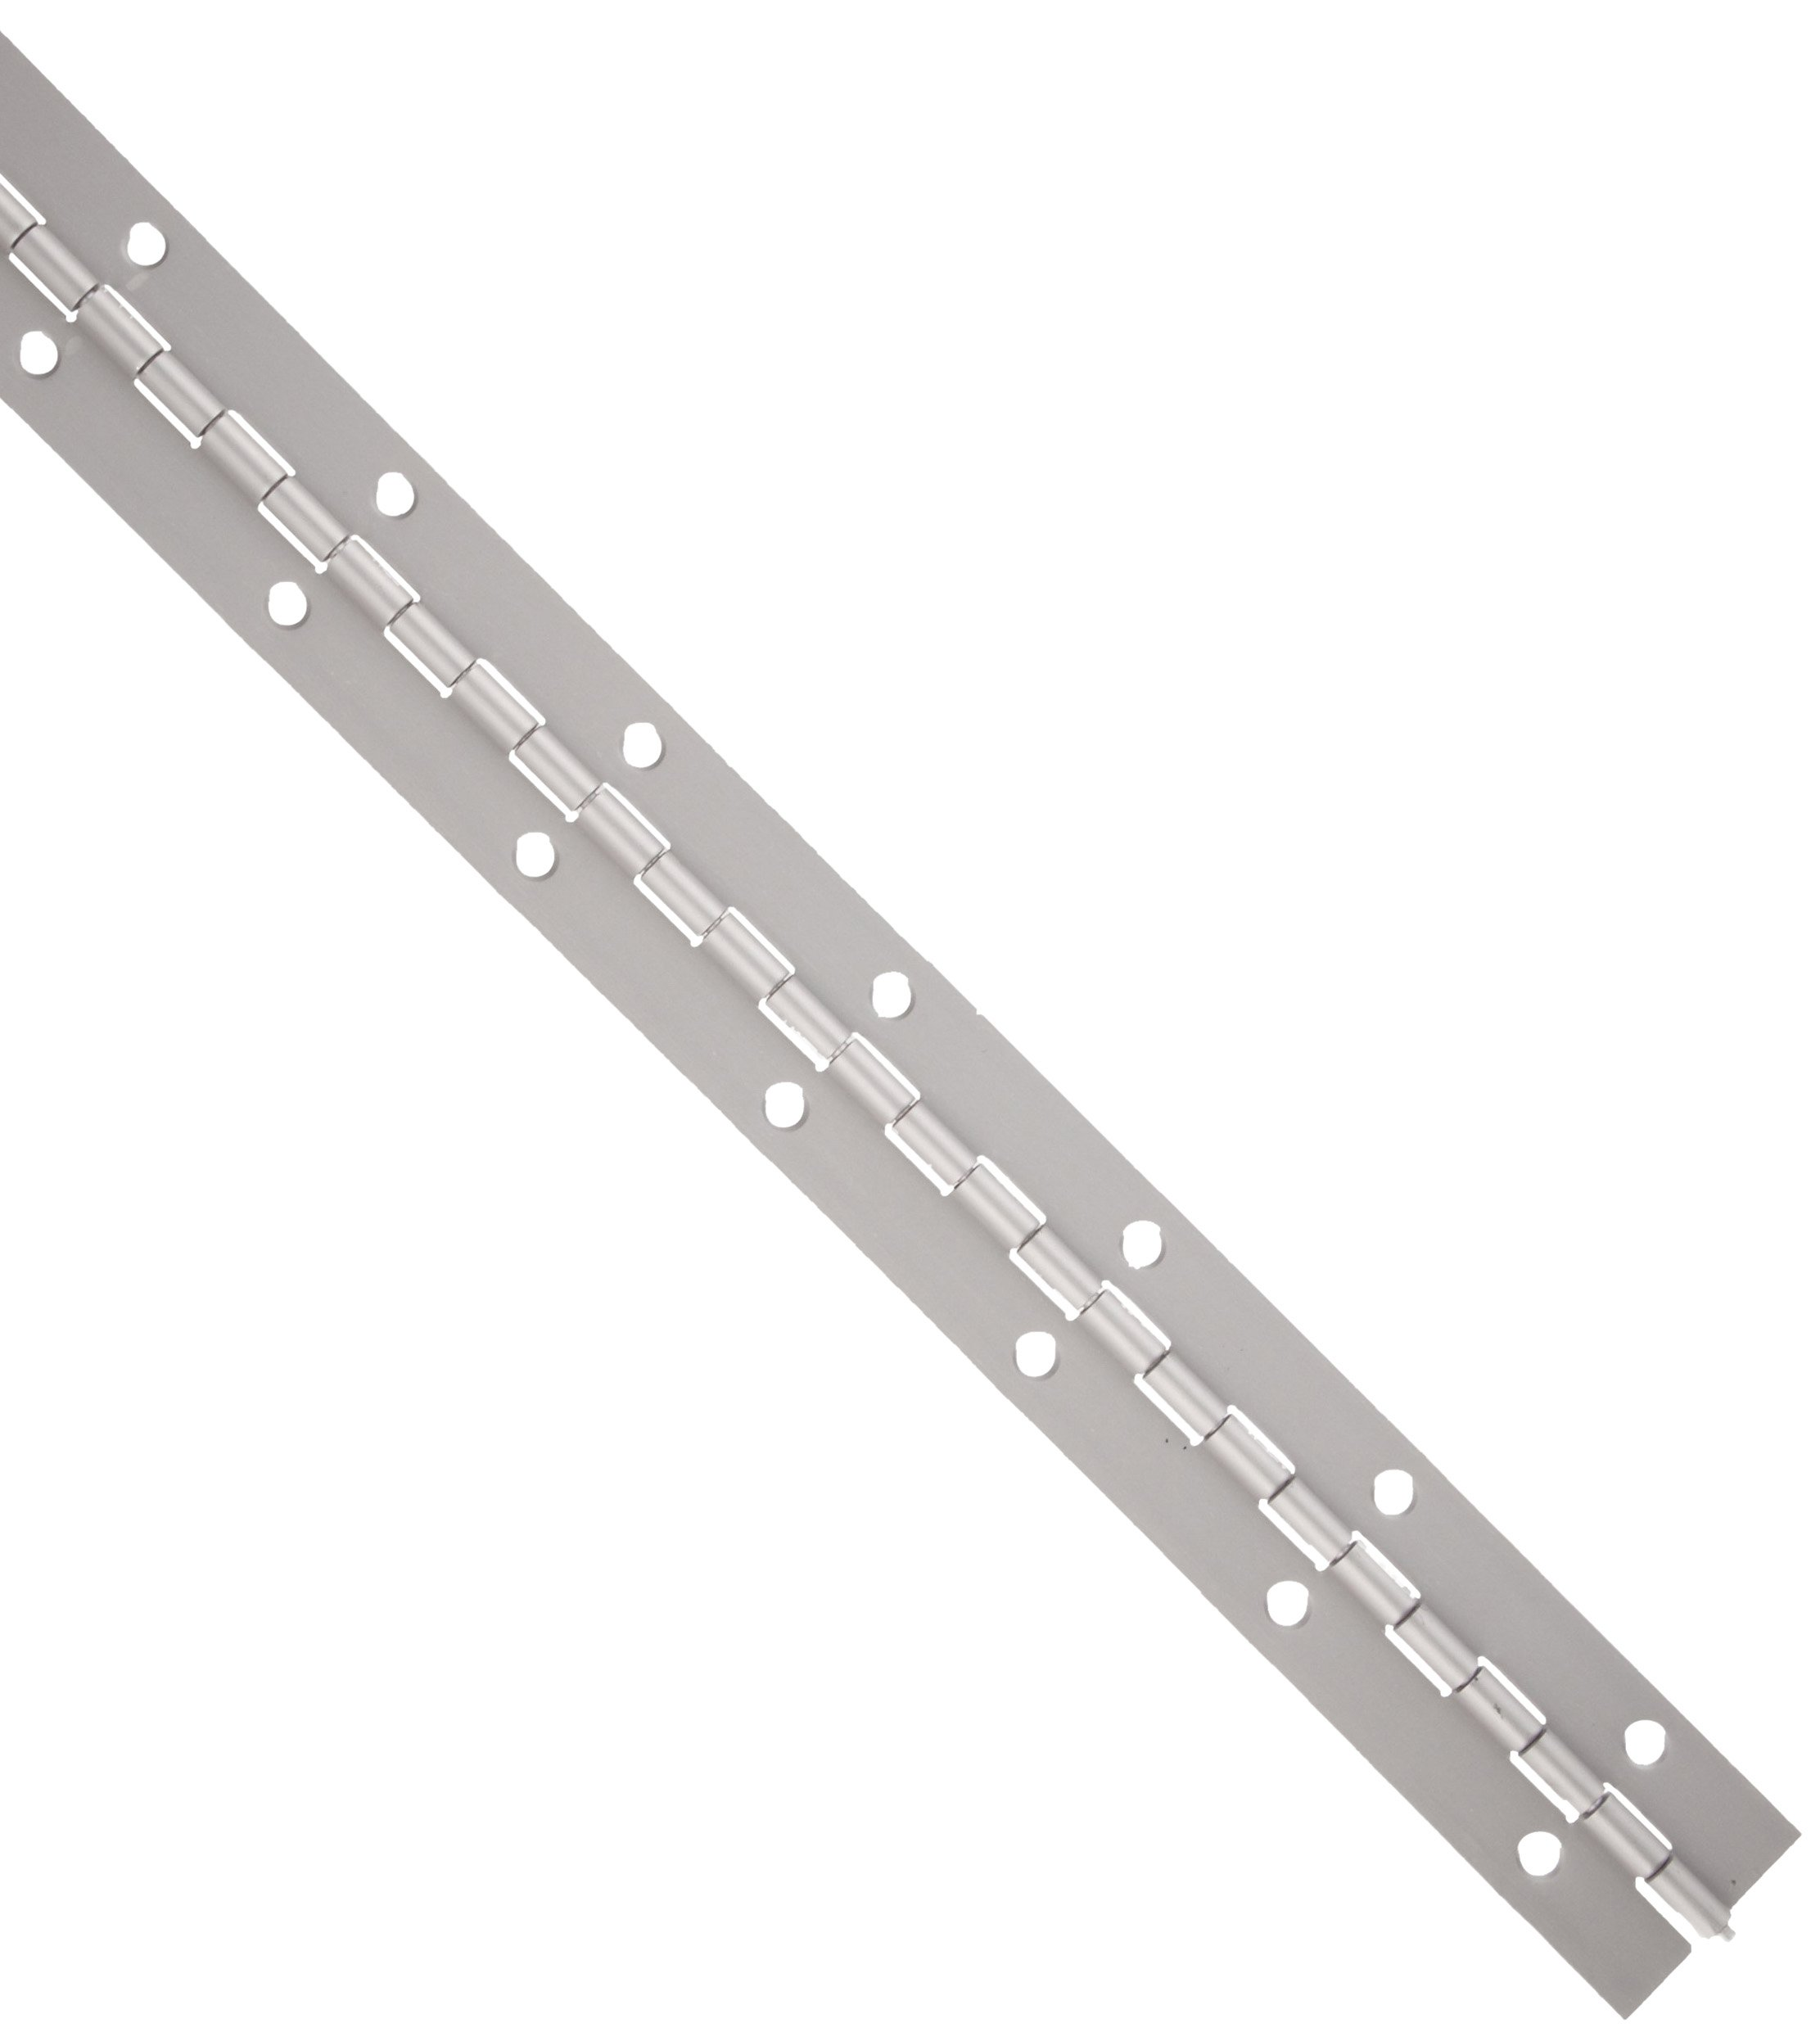 Aluminum 3003 Continuous Hinge with Holes, Clear Anodized Finish, 0.06'' Leaf Thickness, 3'' Open Width, 1/8'' Pin Diameter, 1/2'' Knuckle Length, 6' Long (Pack of 1)